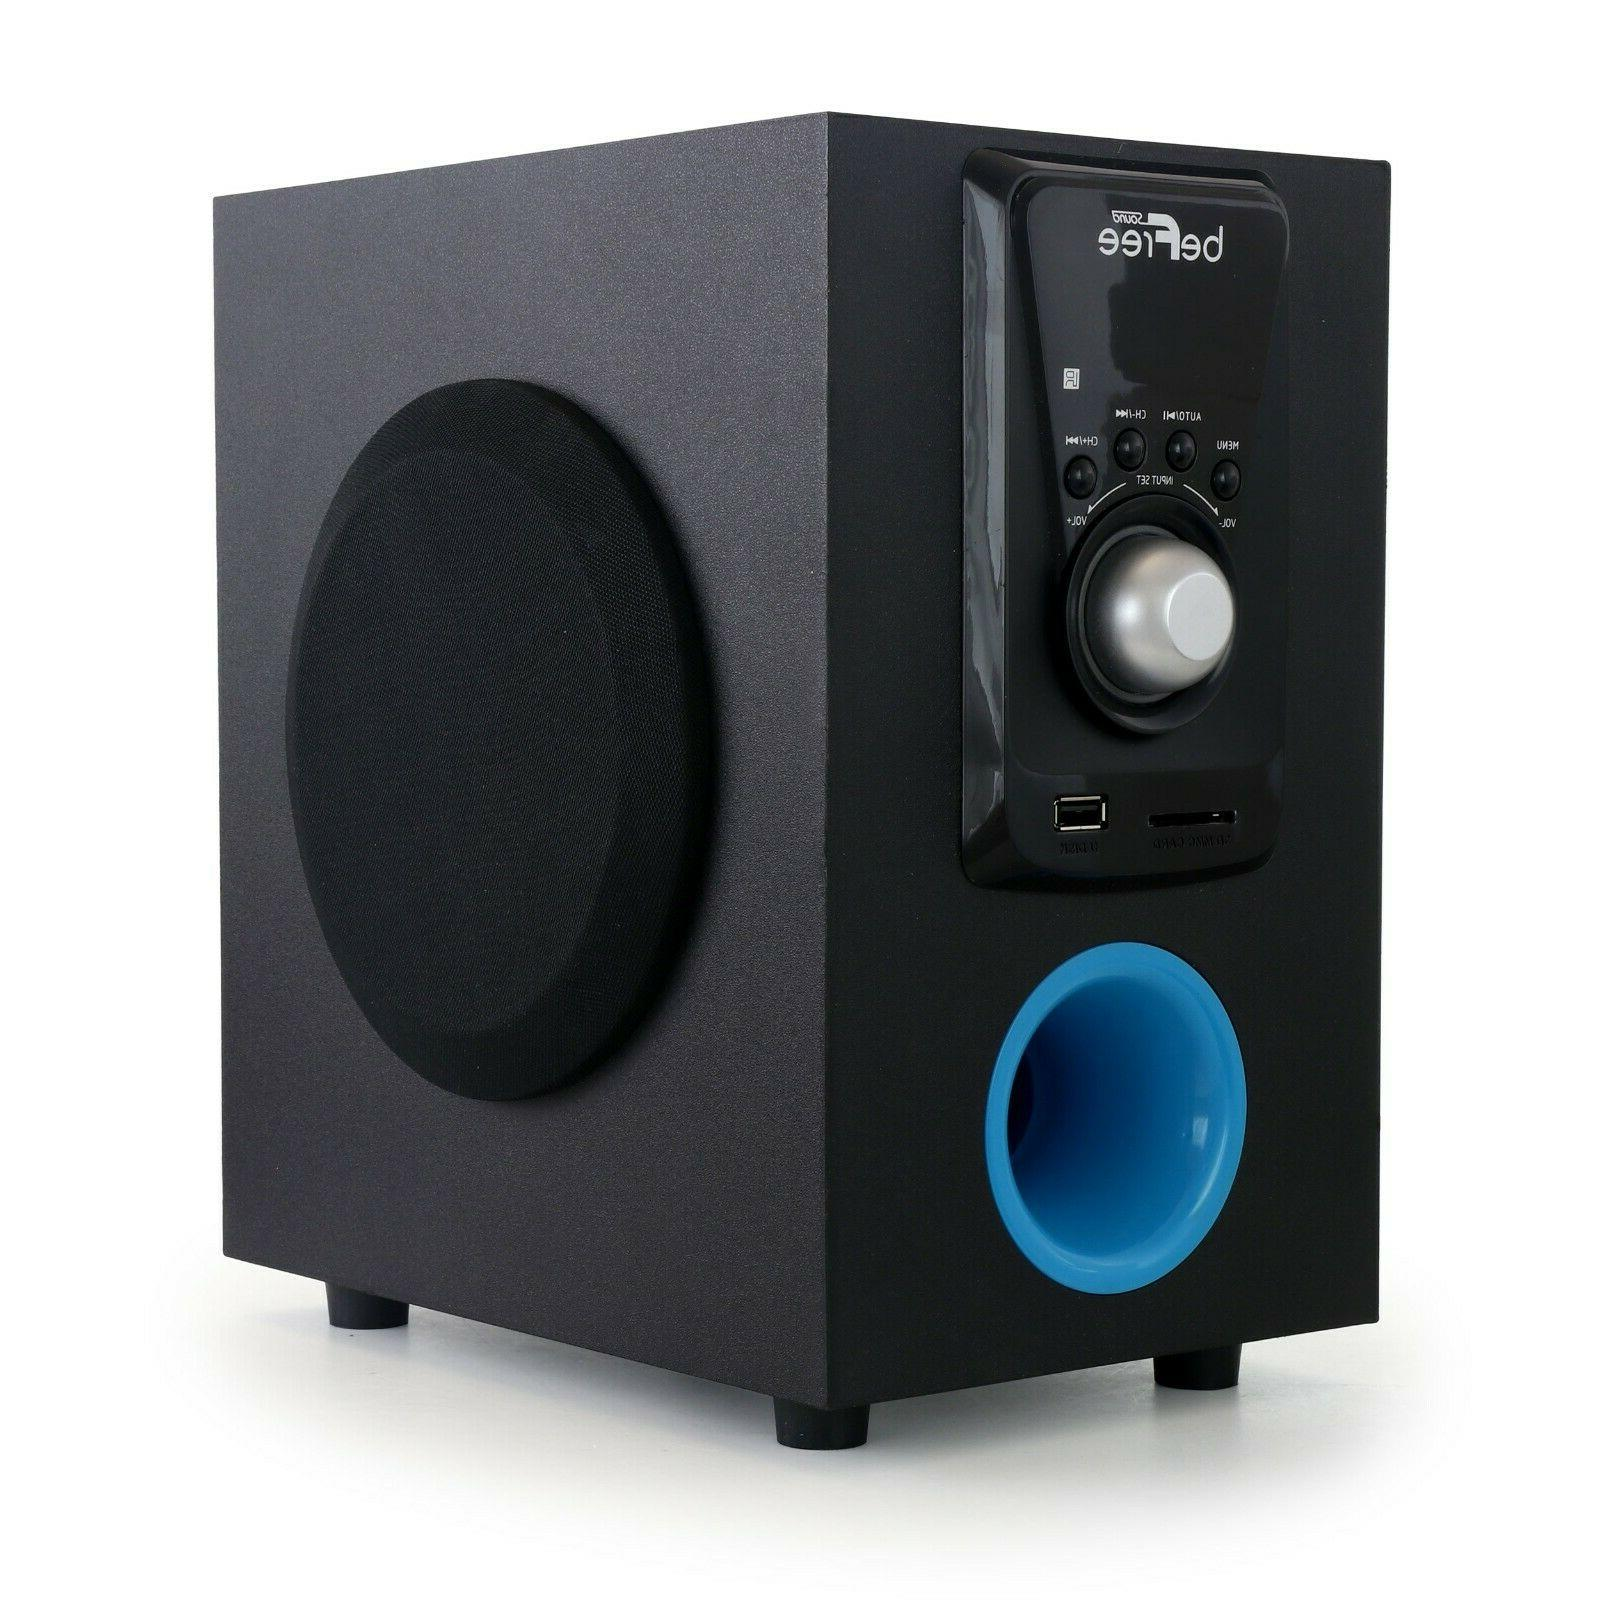 beFree 2.1 Surround Sound Speaker System w Bluetooth USB Remote